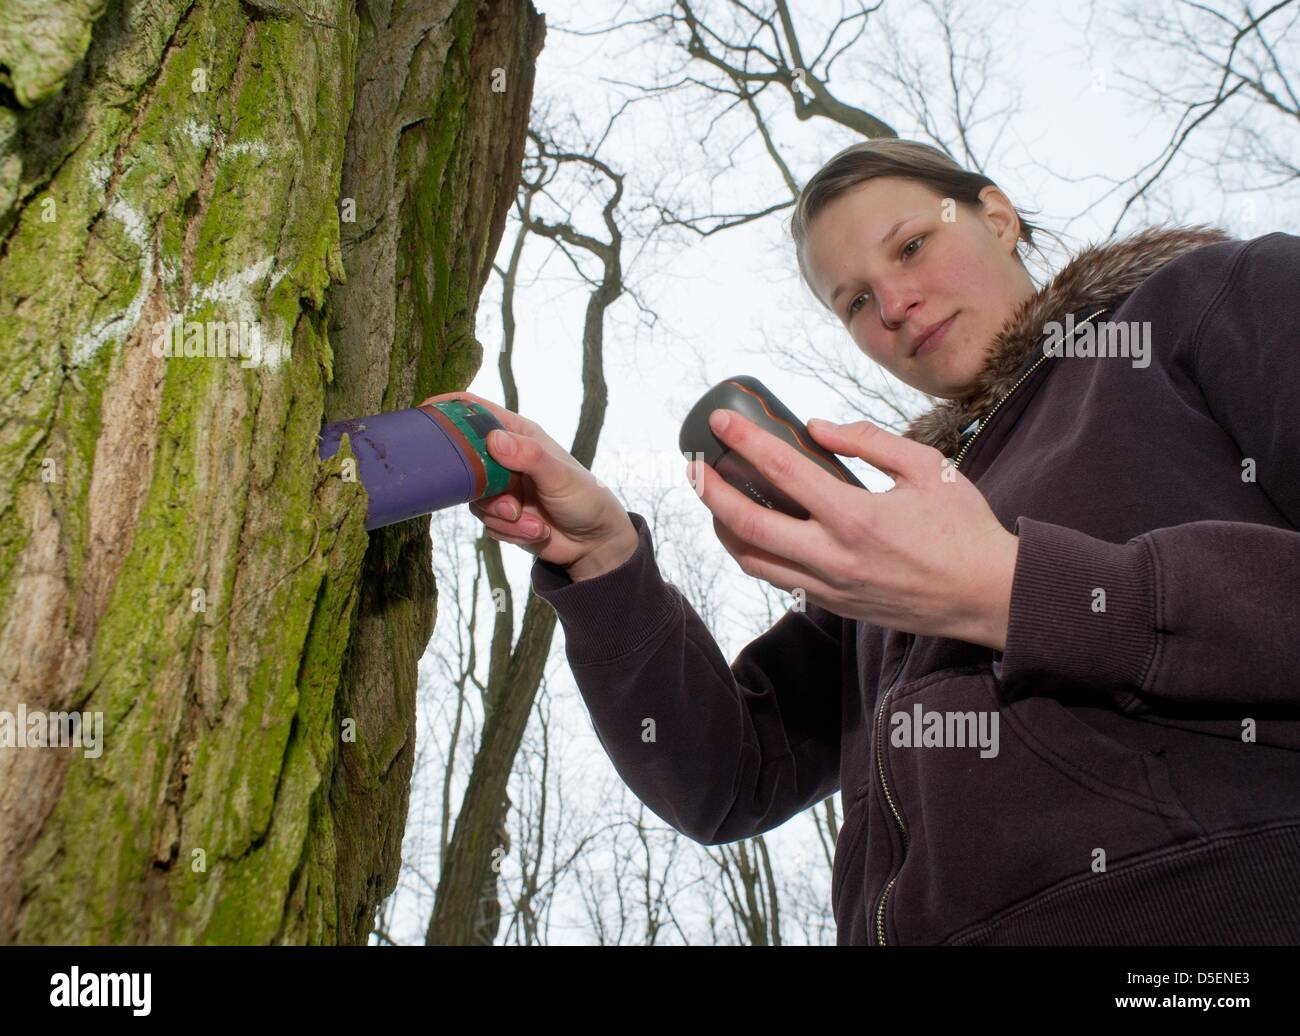 Thekla Noack, who completed a voluntary ecological year (FOEJ) with the August Bier Foundation, hides a geocache - Stock Image